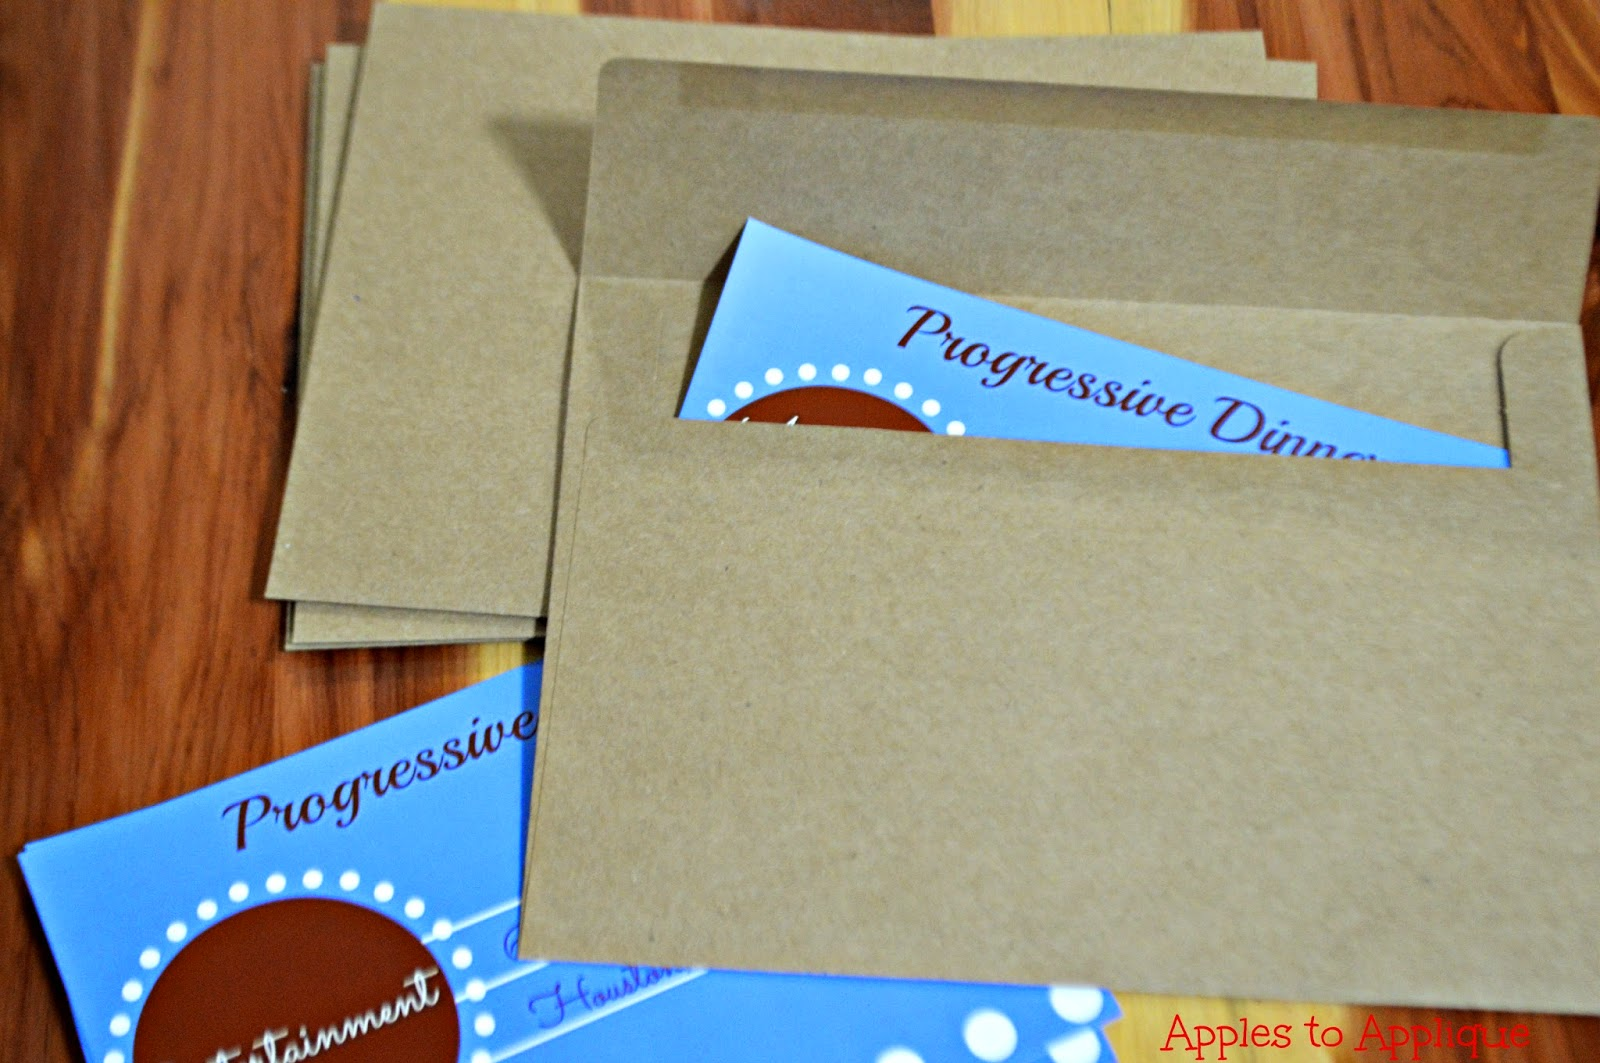 Progressive Dinner Date {with free printables} | Apples to Applique #datenight #dateideas